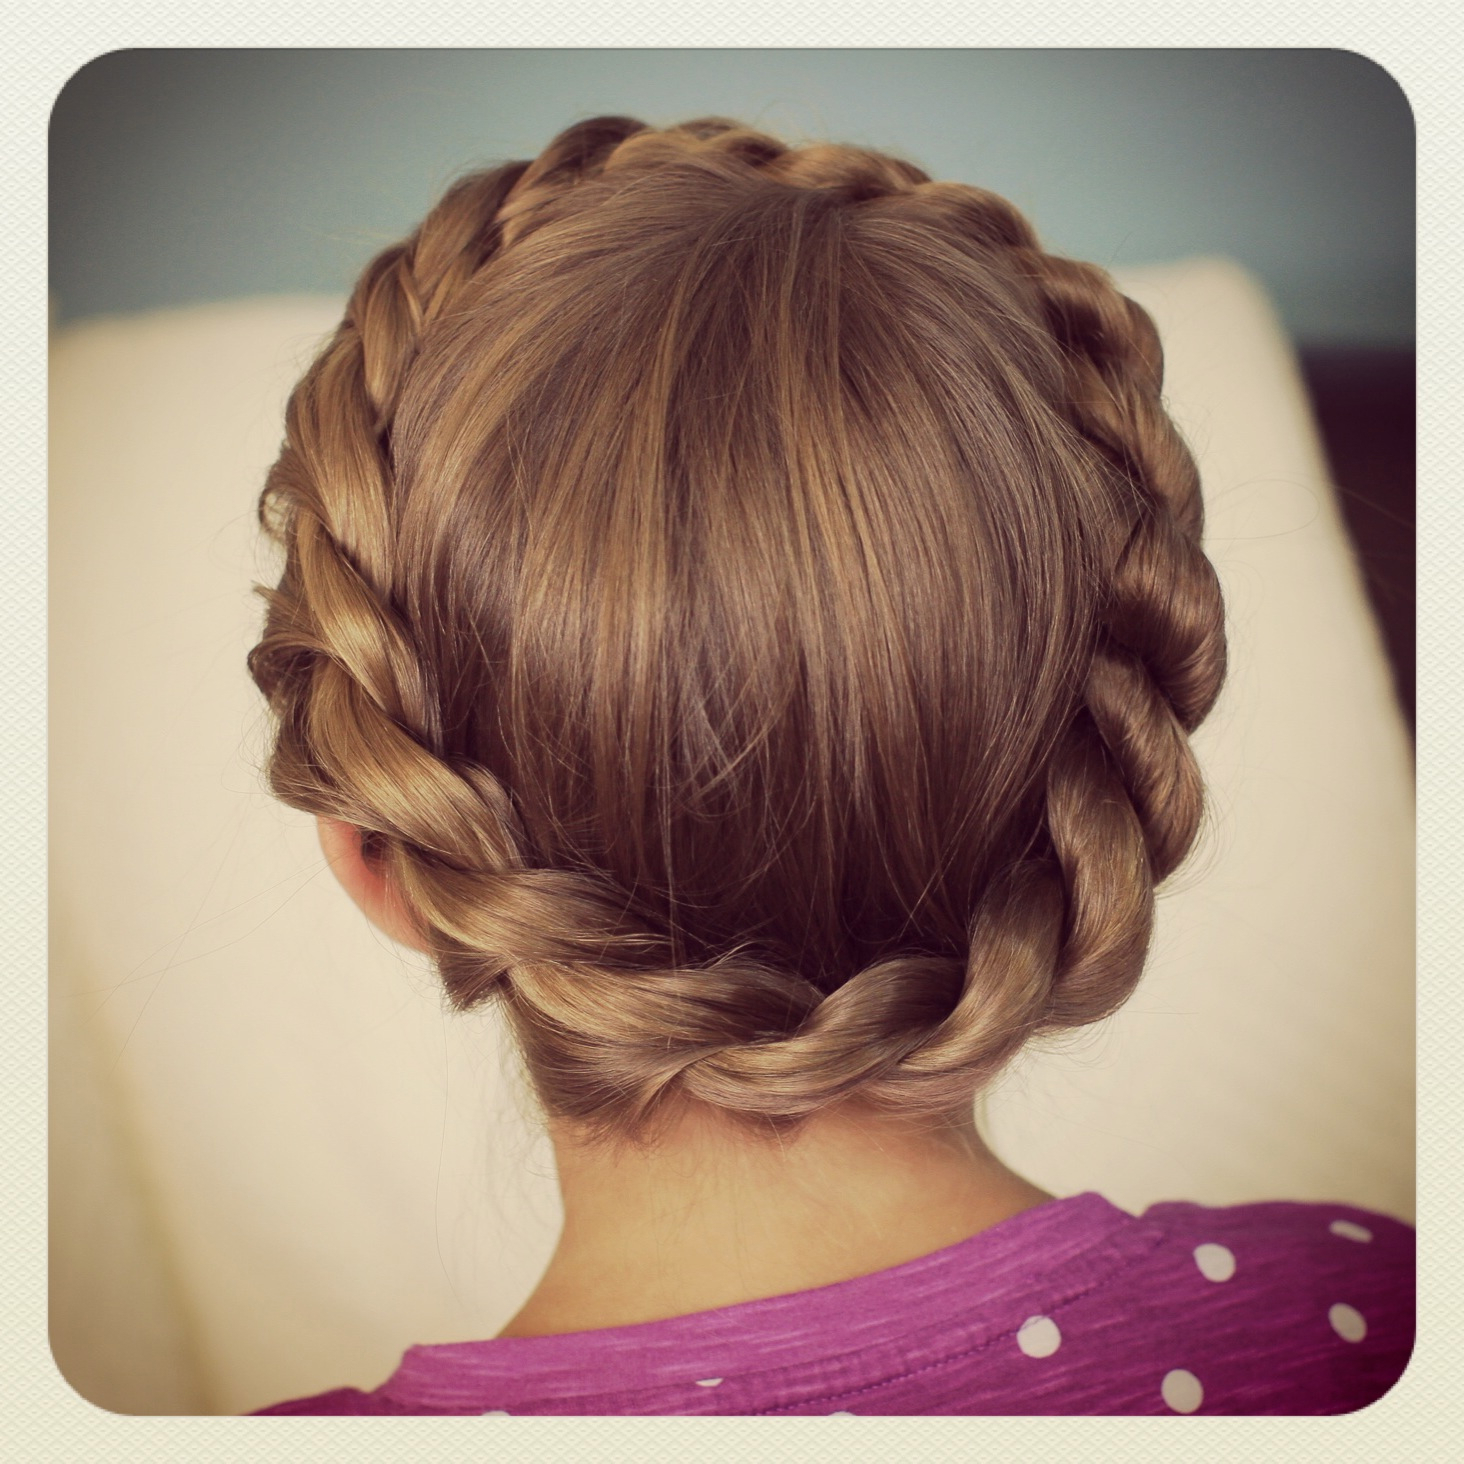 Famous Crown Braid Updo Hairstyles Intended For Crown Rope Twist Braid (View 18 of 20)